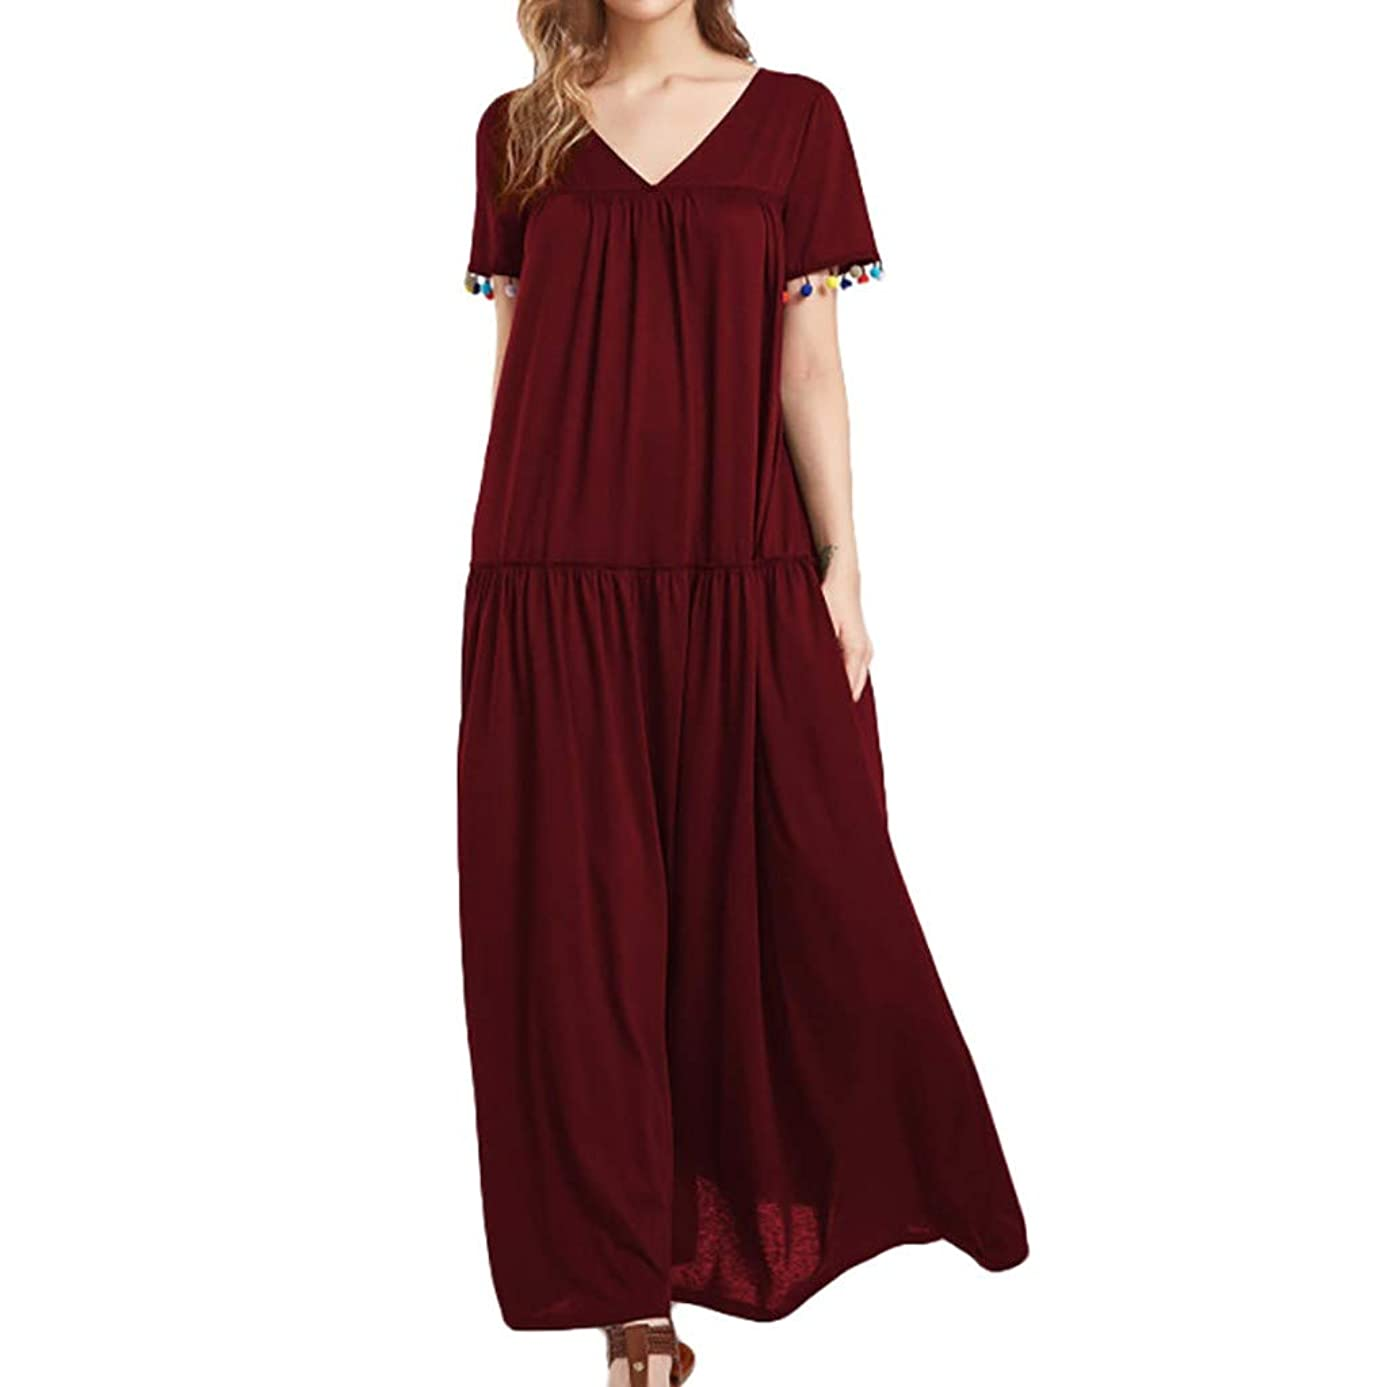 GHrcvdhw Stylish Women Summer Casual Solid Color Short Sleeve Fold Plus Size Long Dress